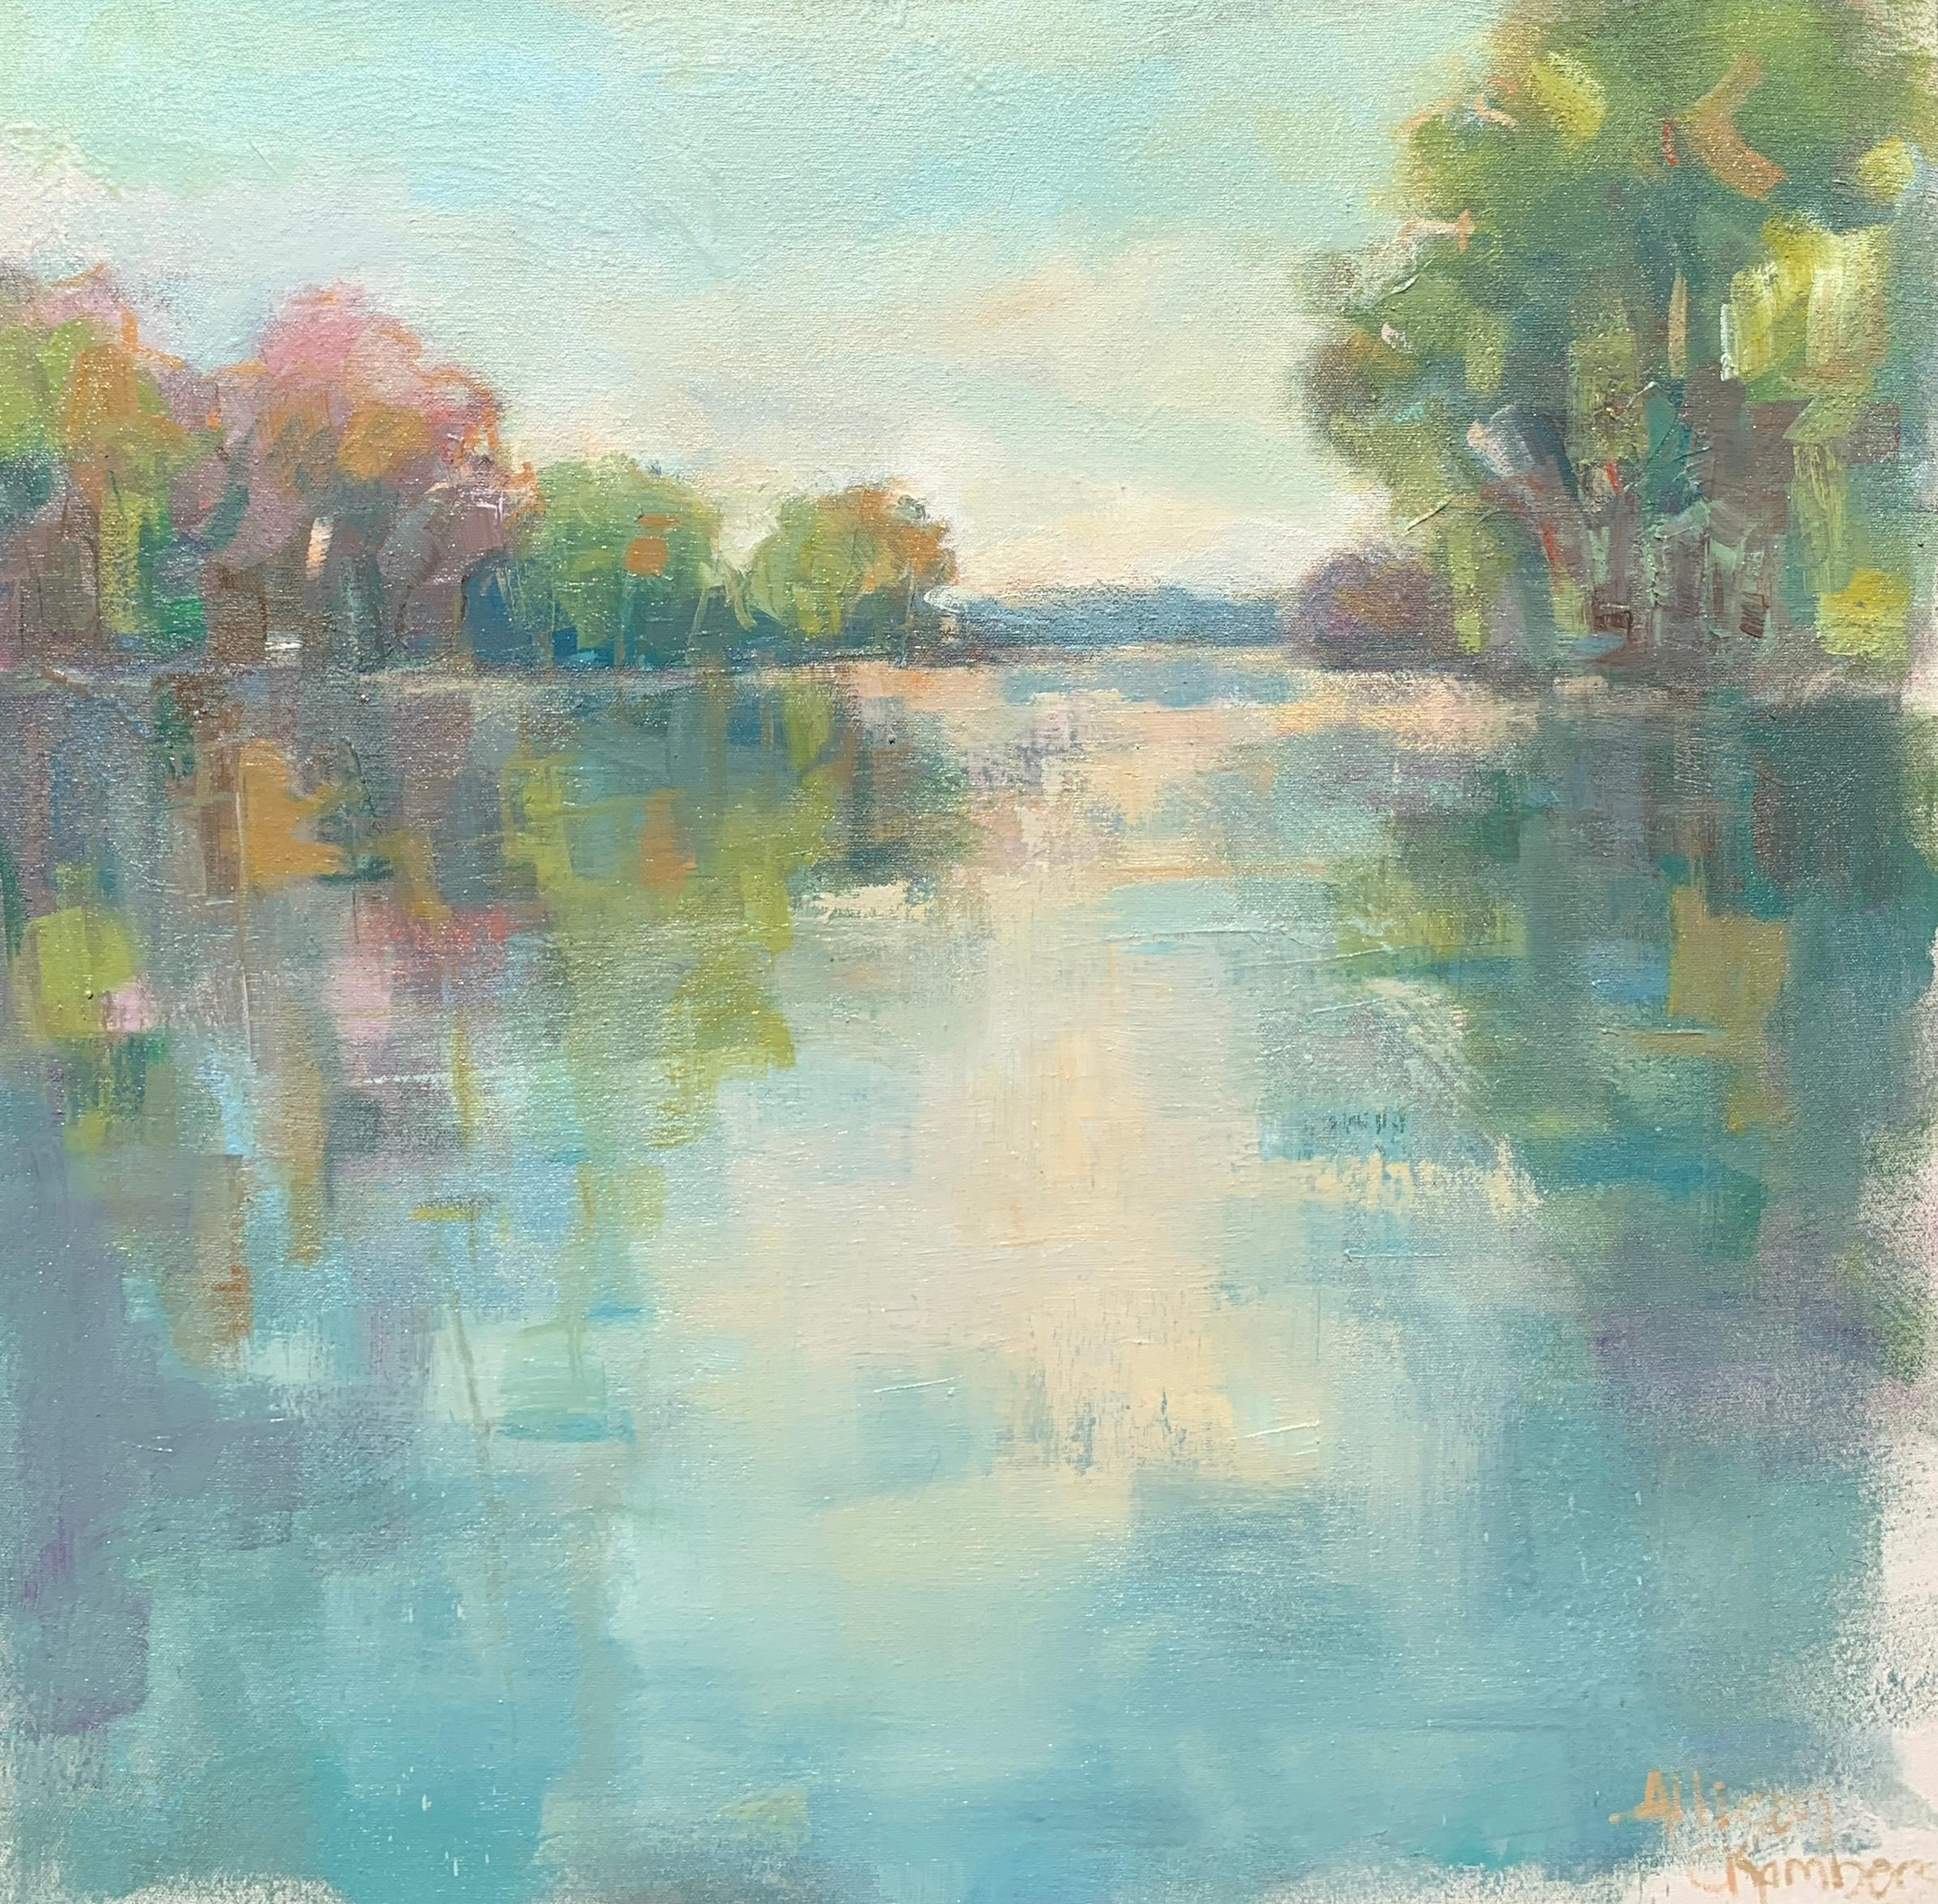 Brighter Days by Allison Chambers, Oil on Canvas Impressionist Landscape